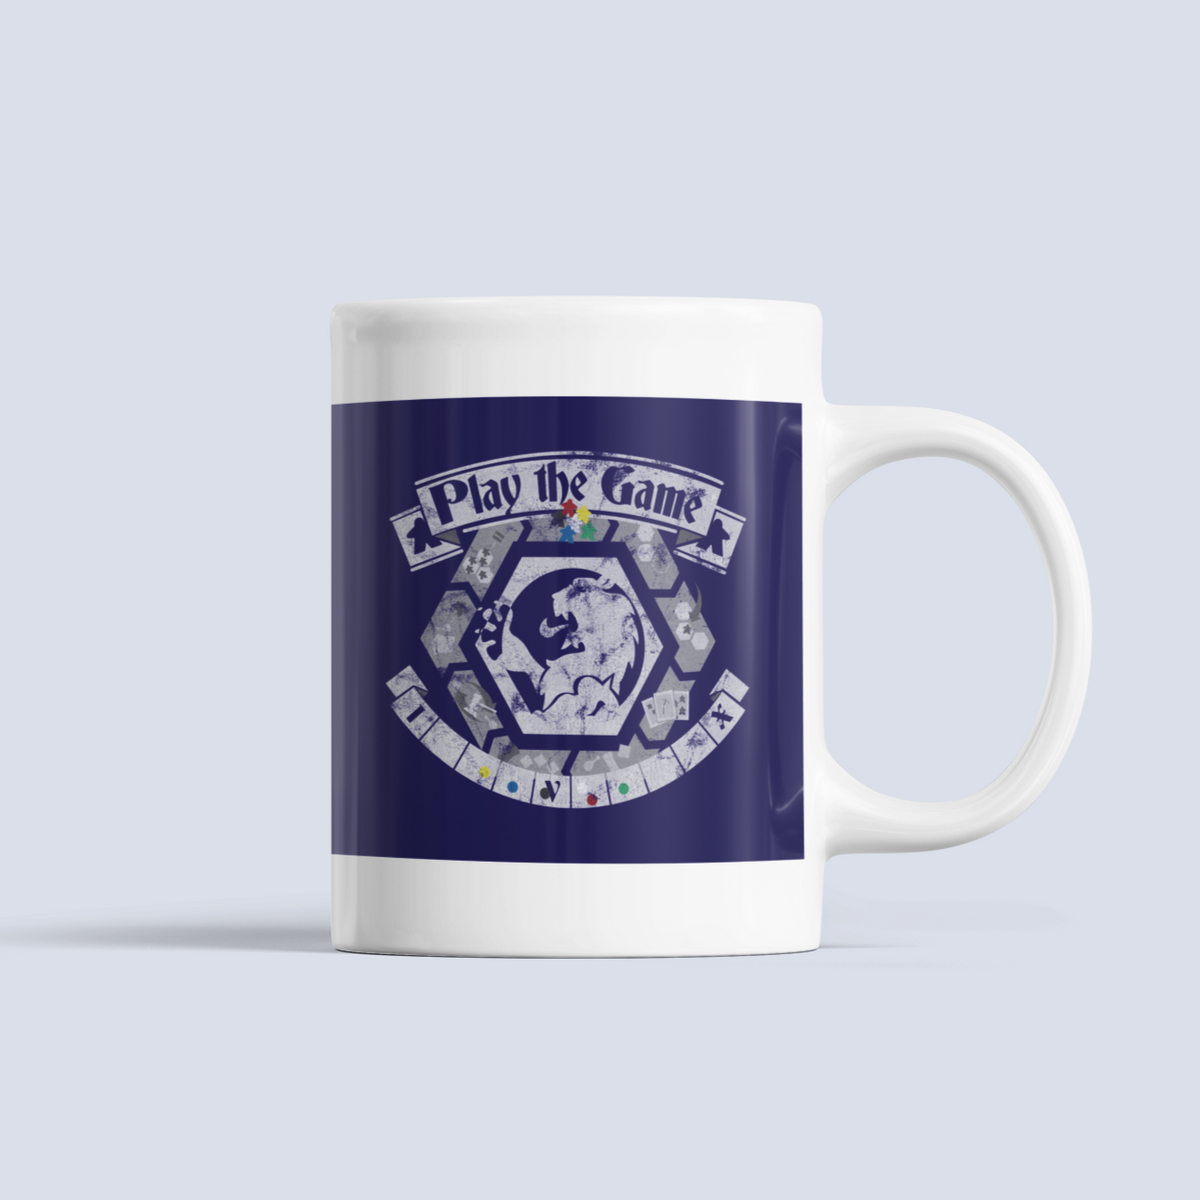 Play the Game Board Game Ceramic 15oz Mug